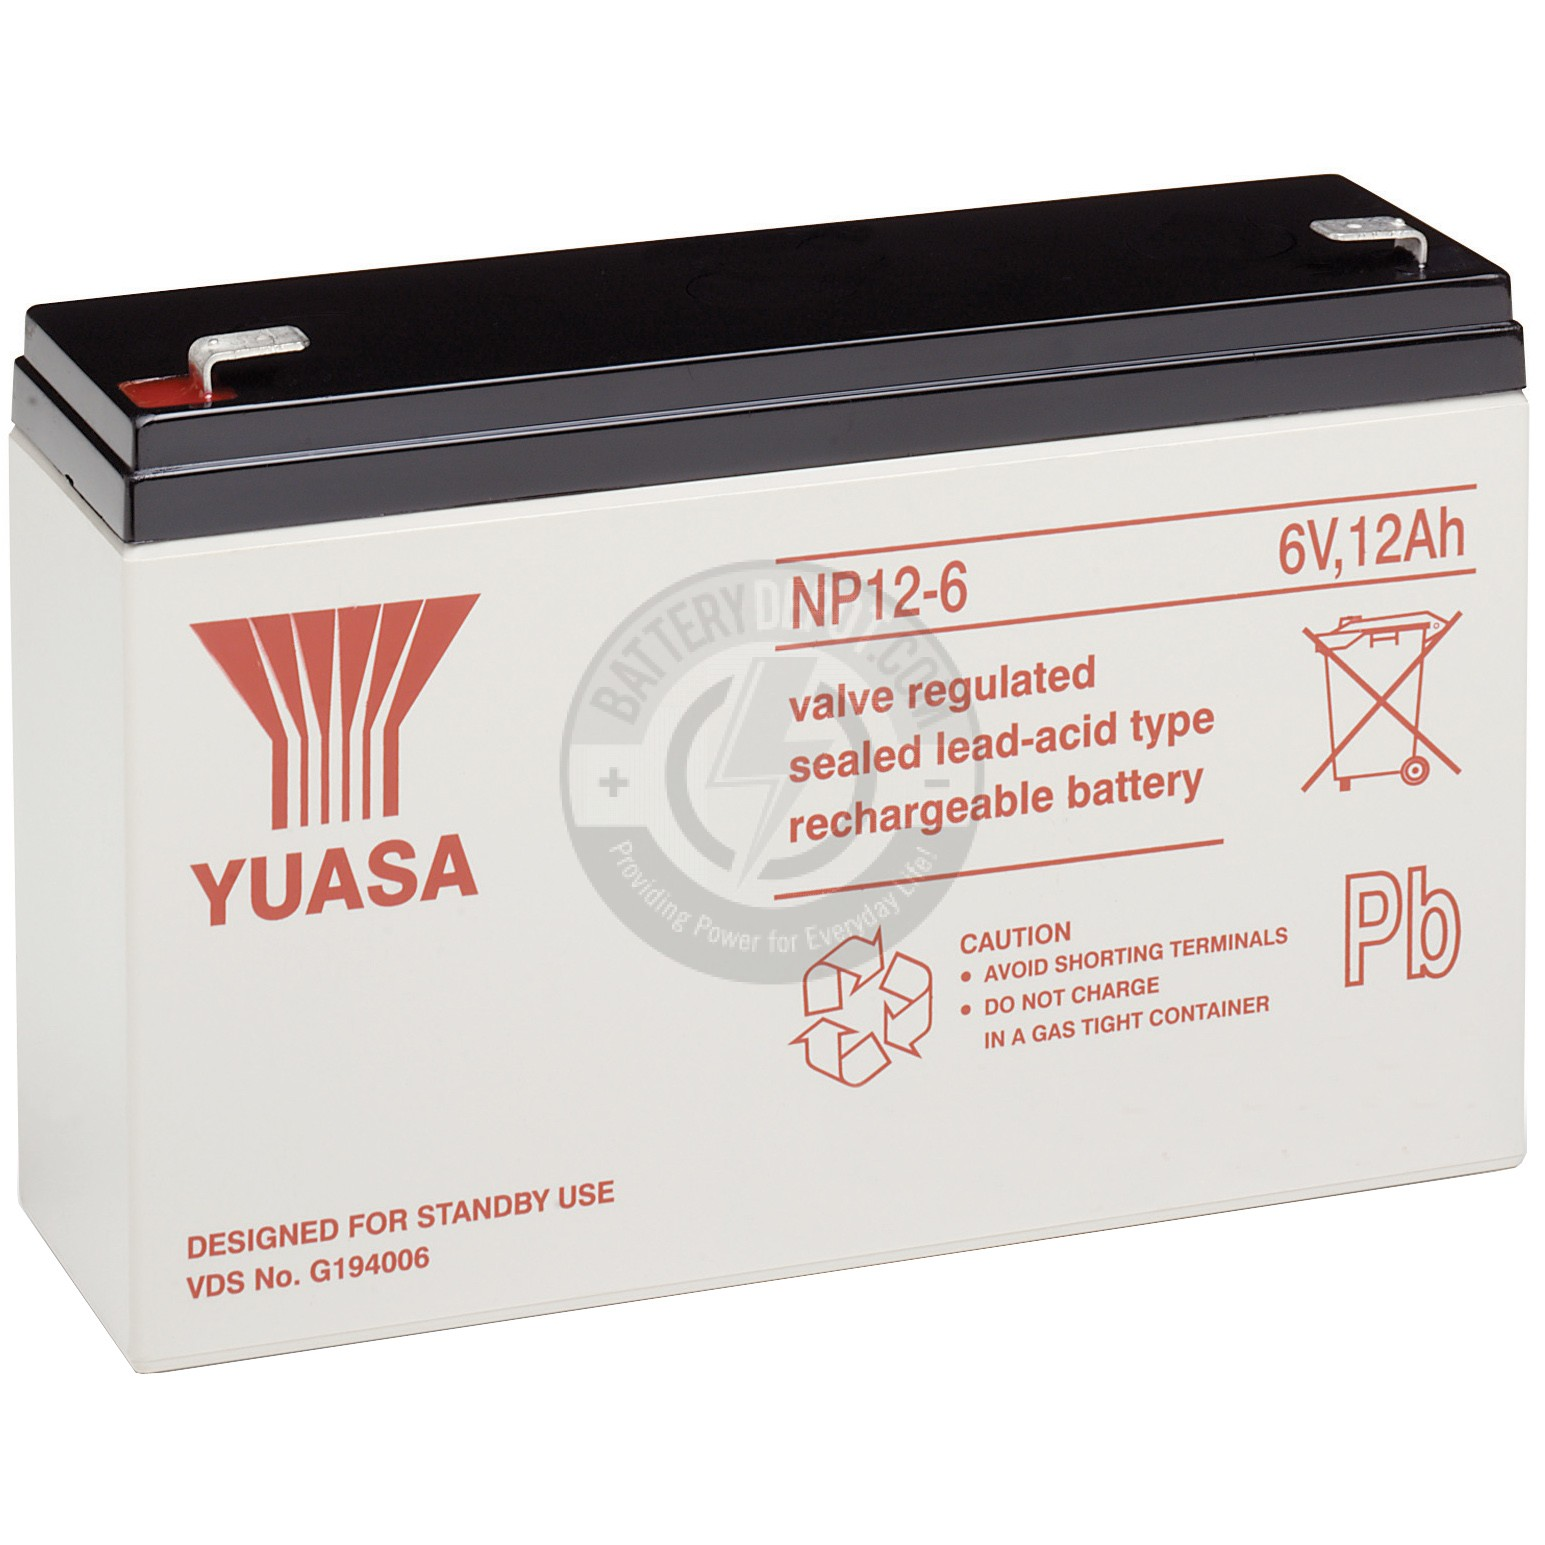 6v 12Ah Sealed Lead Acid Battery with F1 Terminals